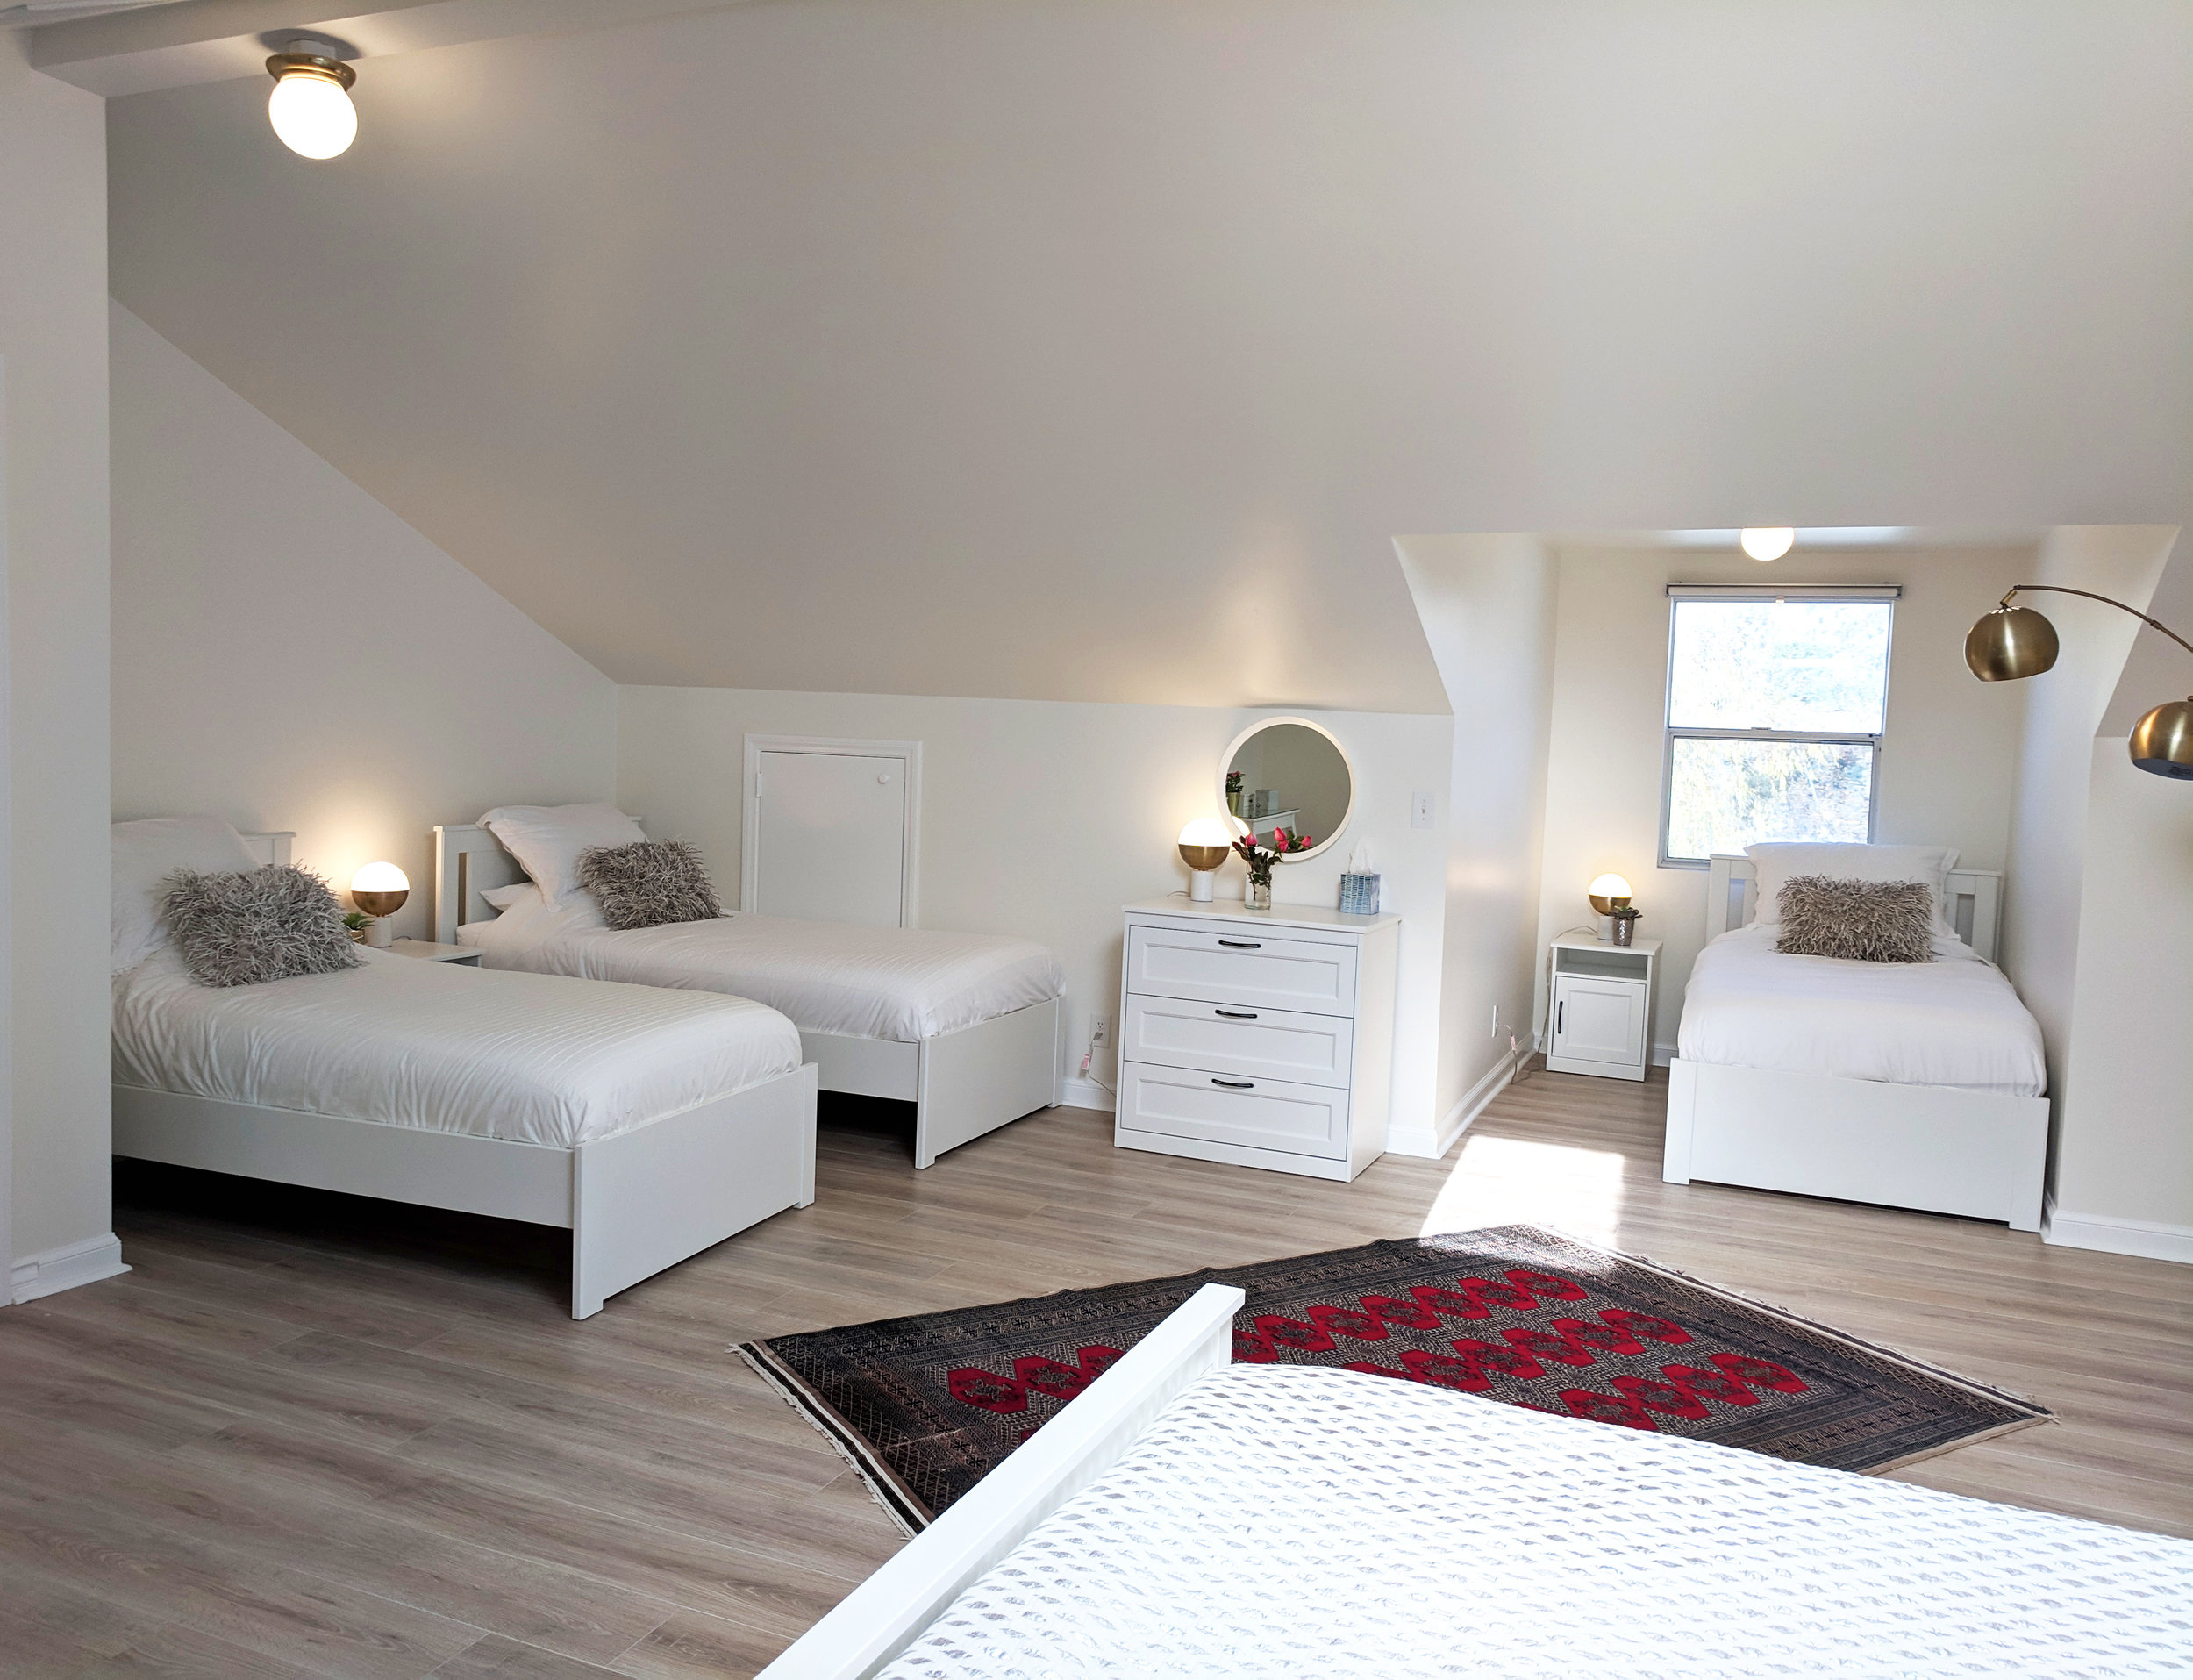 Shared bedroom with single beds